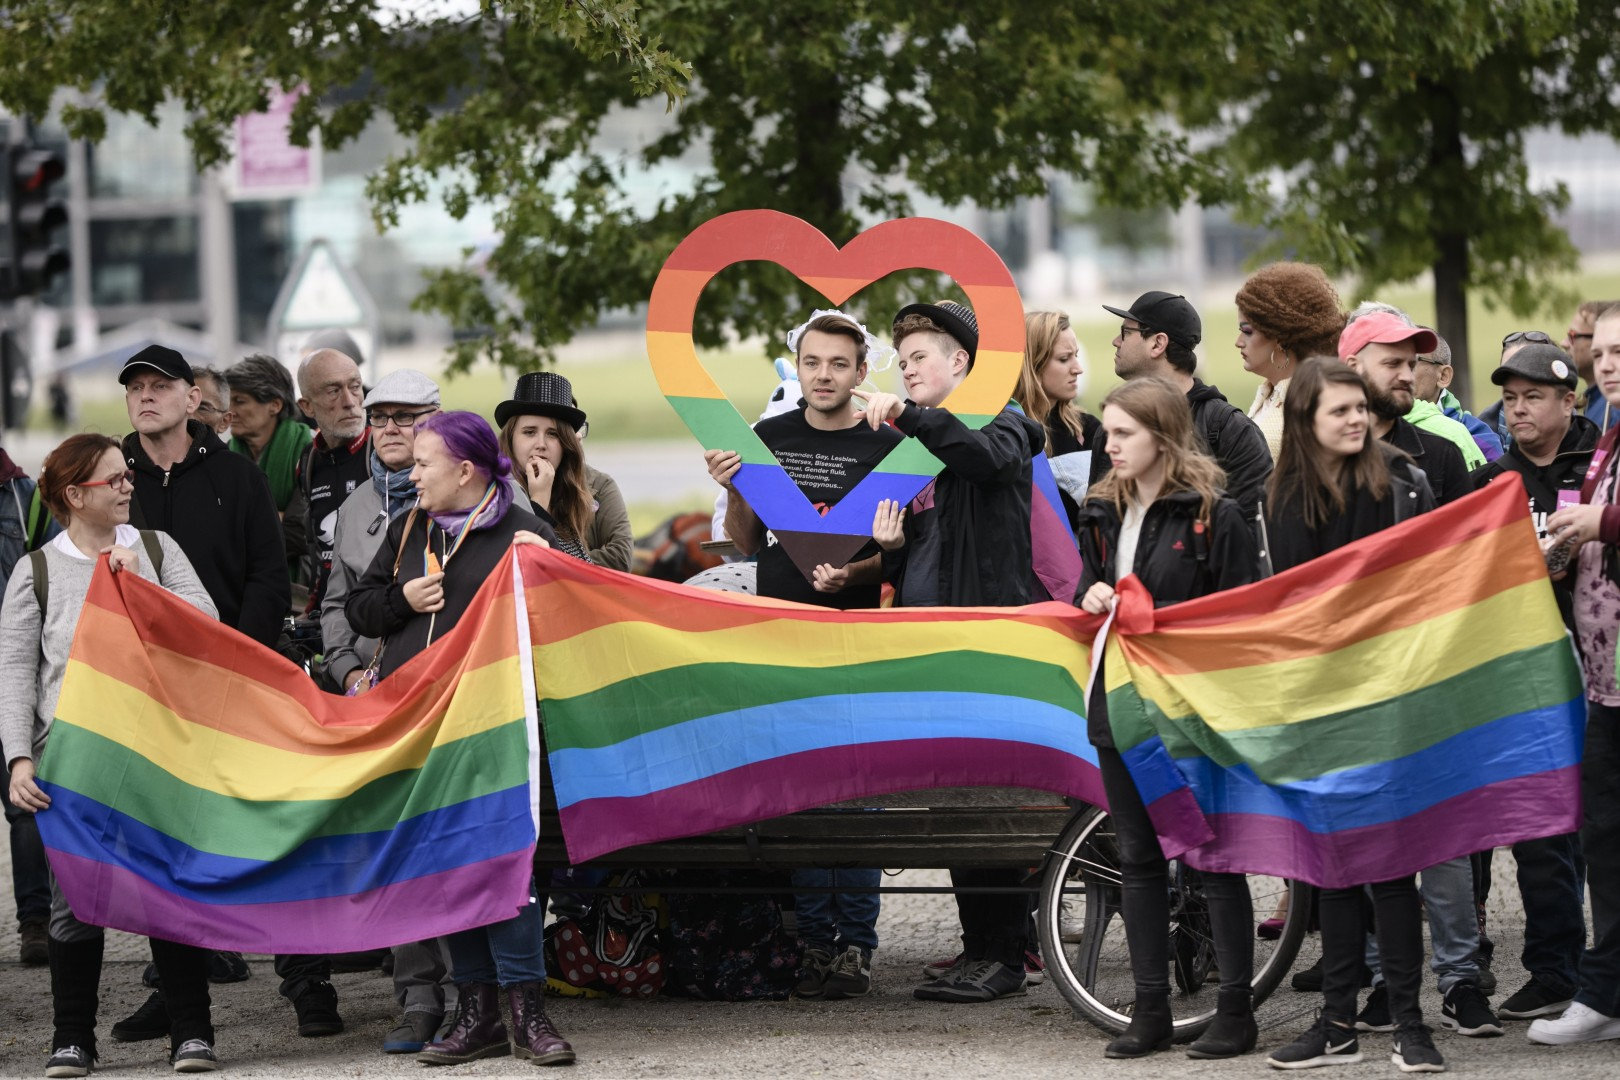 German gay couples get ready to marry on Sunday, after decades of struggle  for equal rights | South China Morning Post